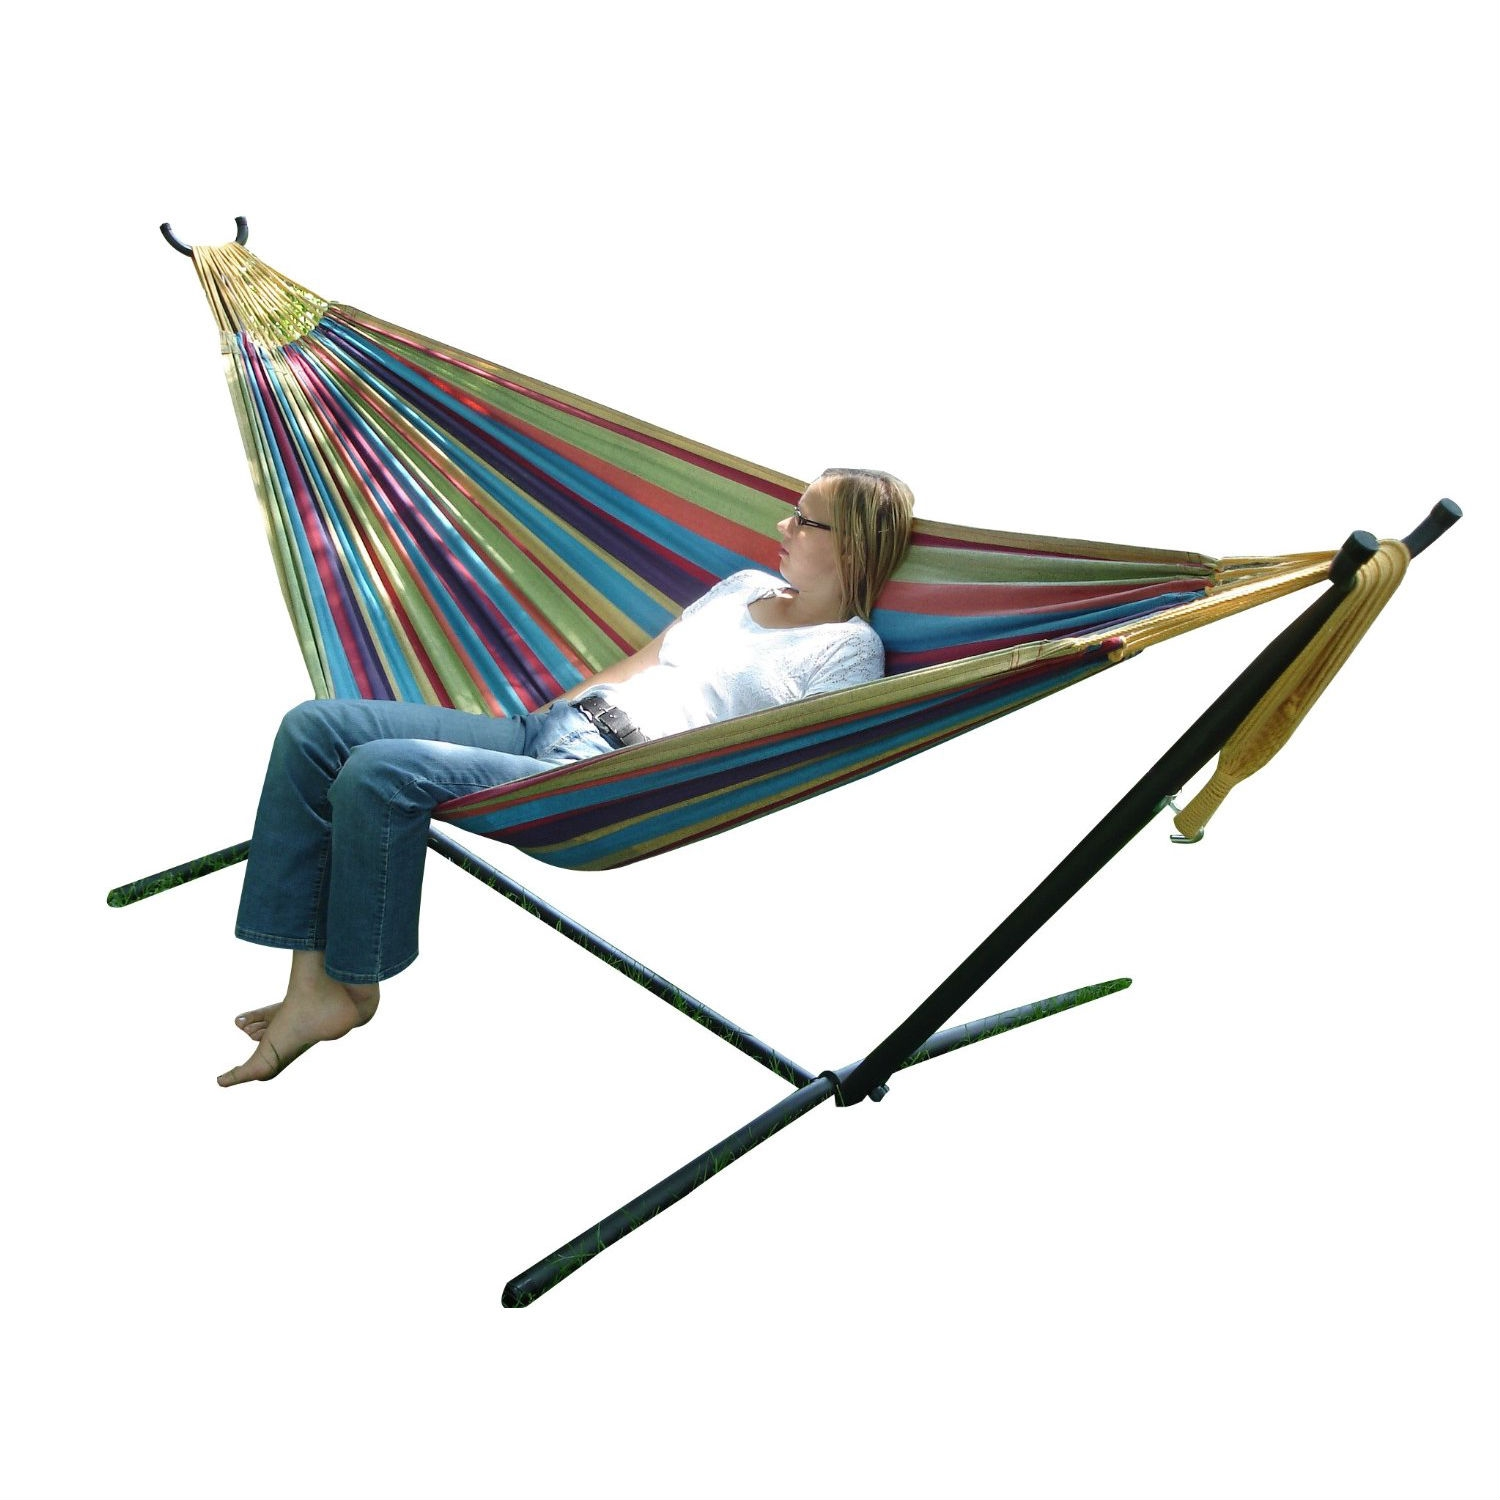 tropical fabric double hammock with 9 foot steel stand tropical fabric double hammock with 9 foot steel stand      rh   fastfurnishings